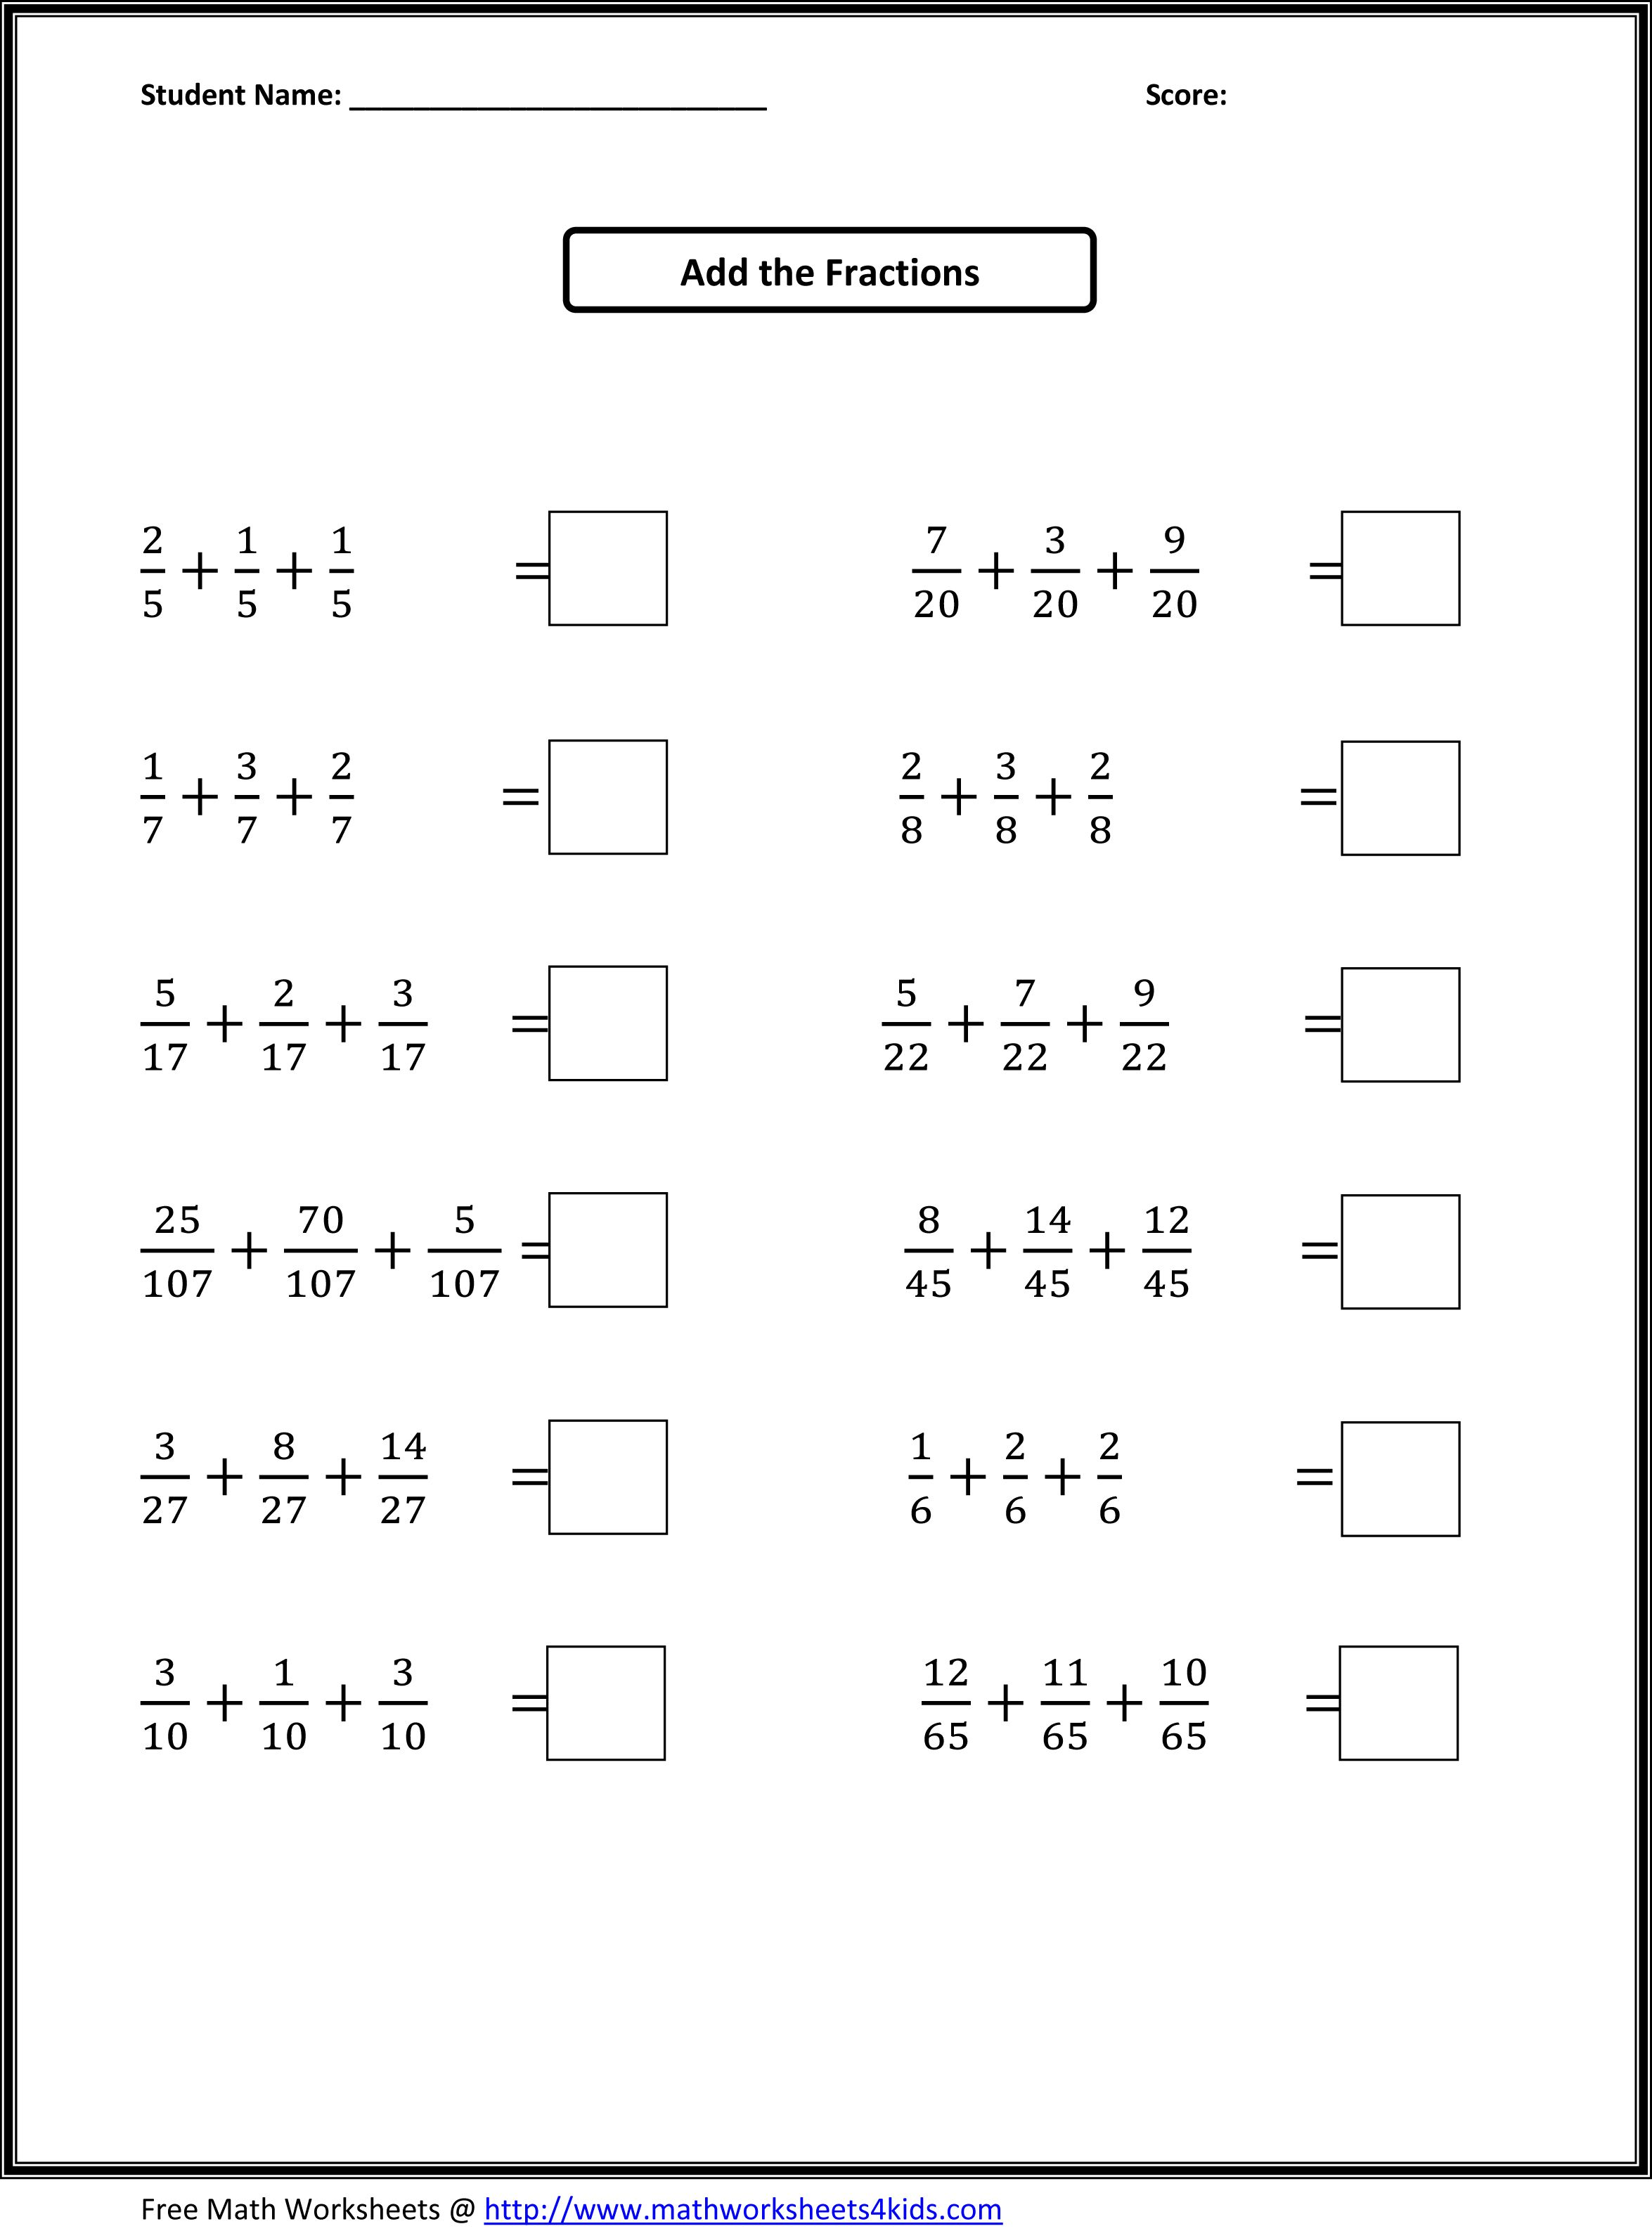 Worksheets Math Fraction Worksheets 1000 images about printable math worksheets on pinterest adding we have 20 high quality equivalent fractions for grade photos updated october you can use worksh